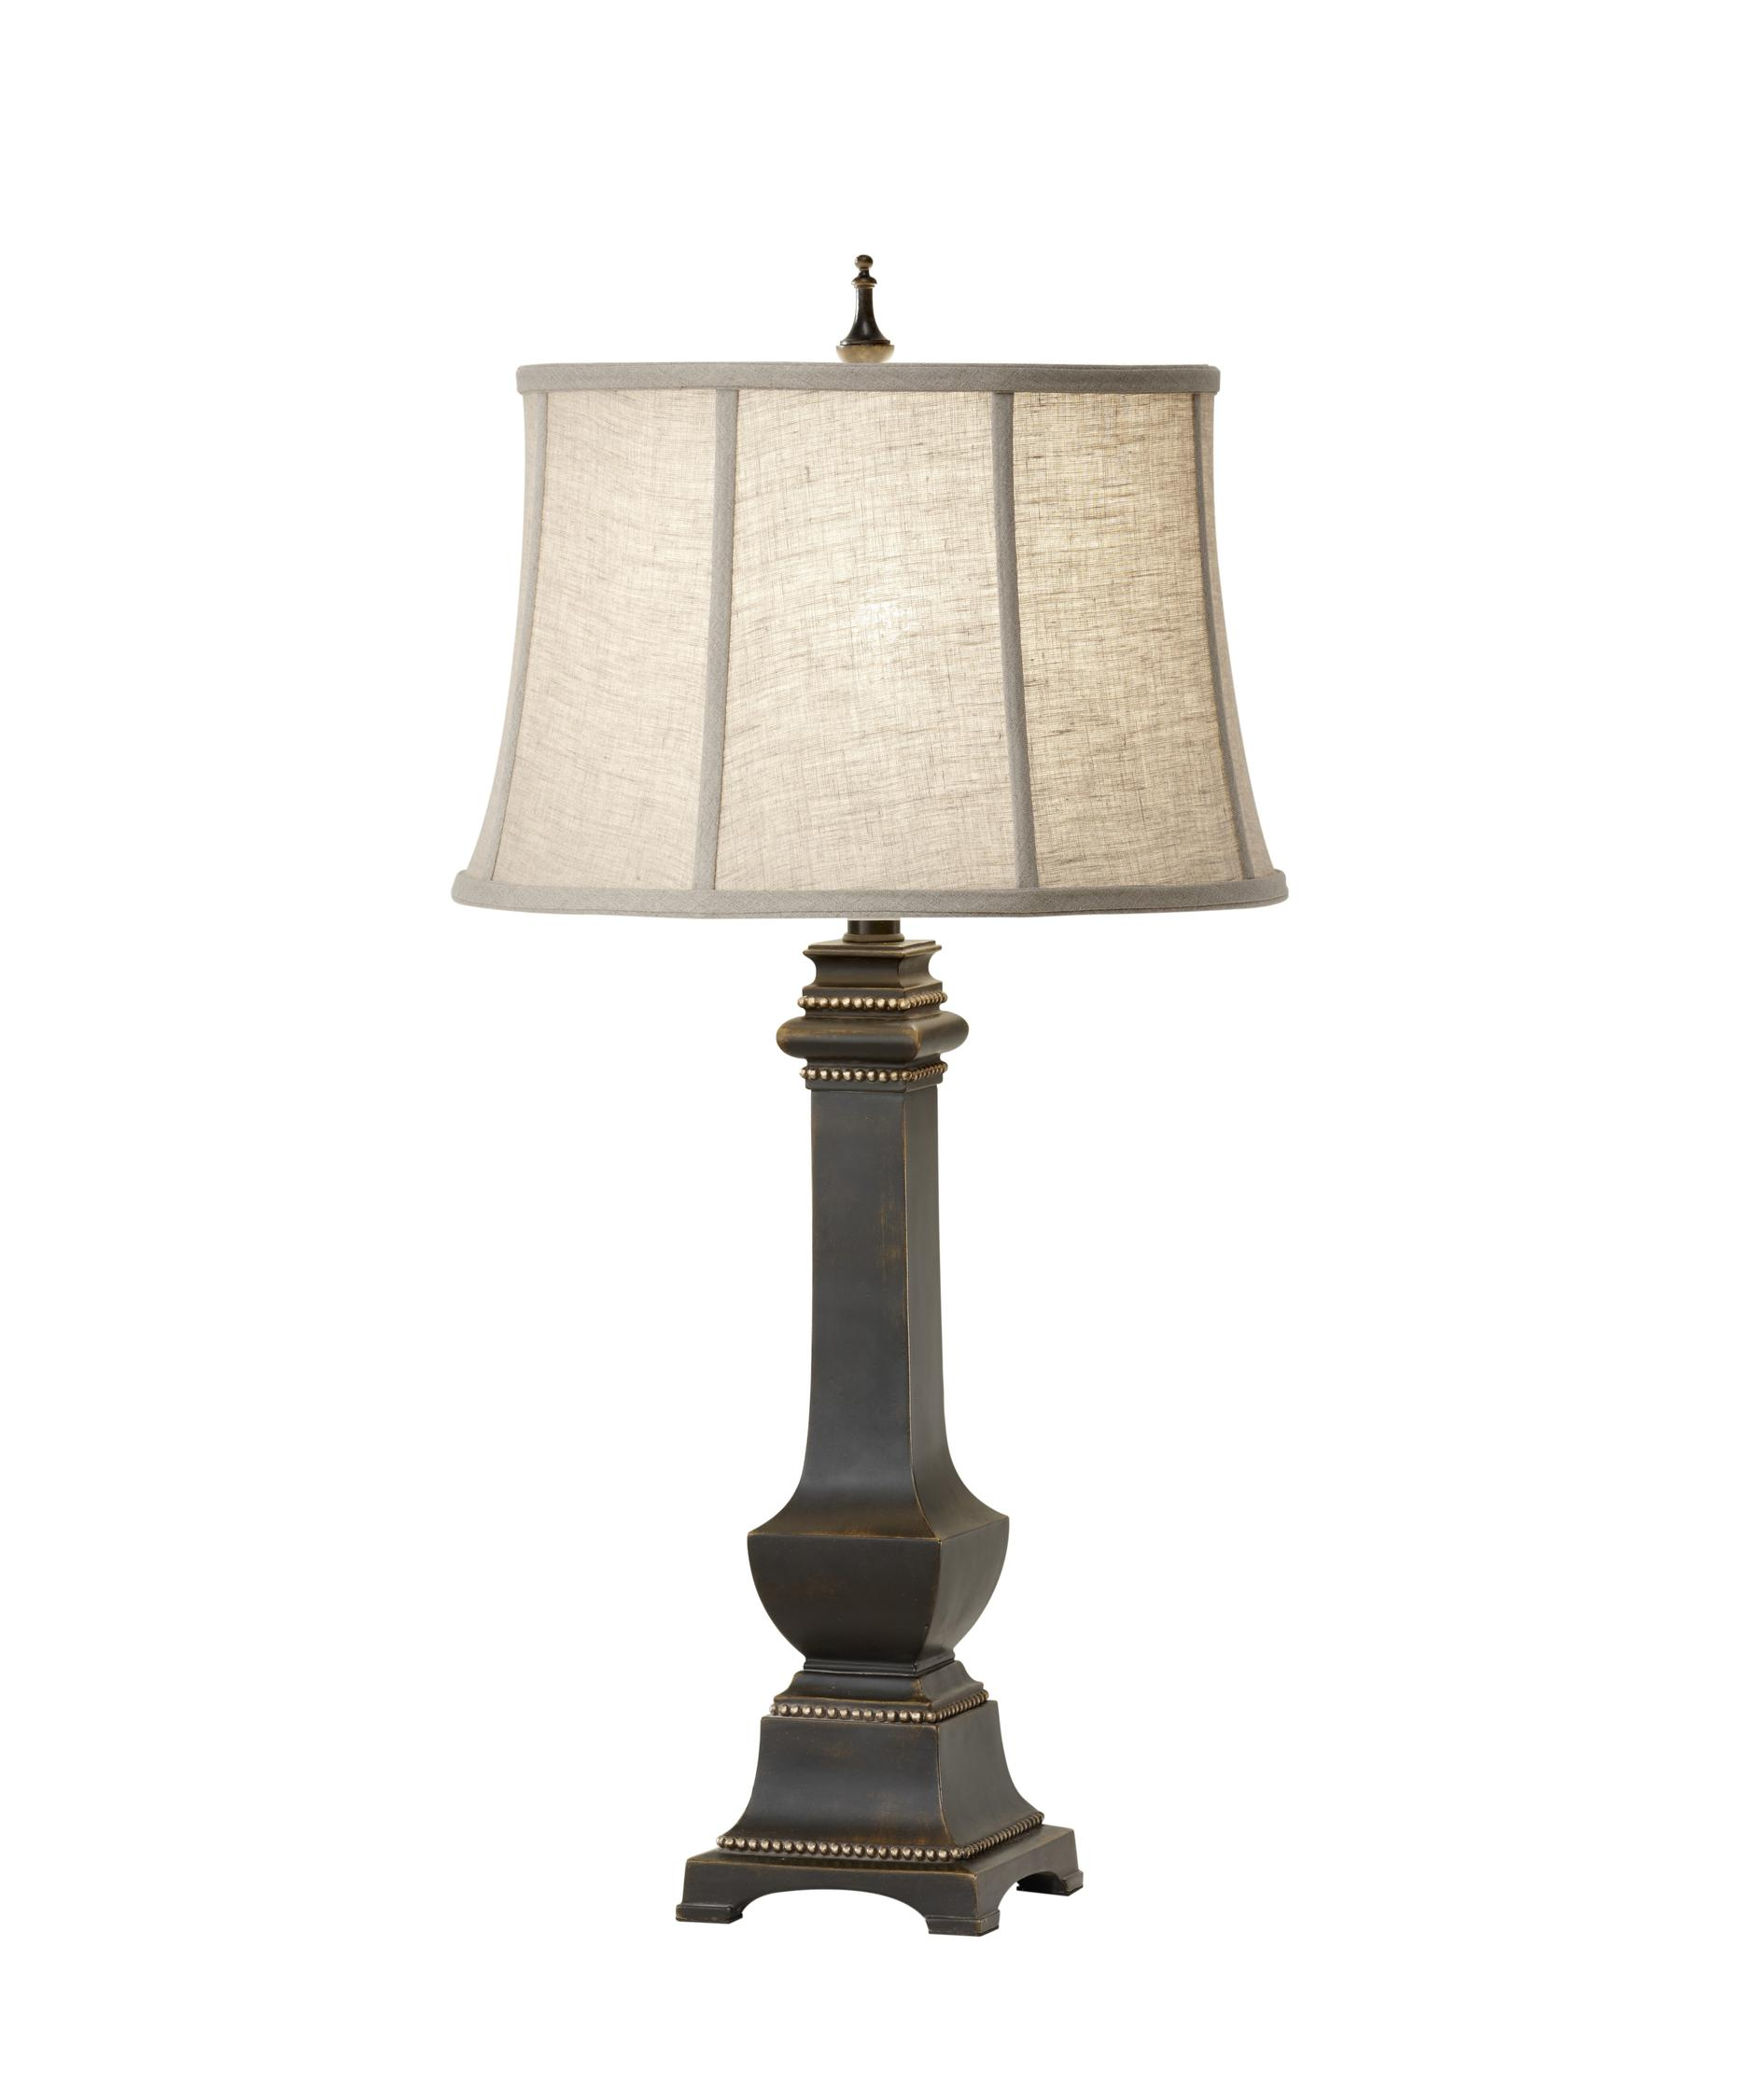 Murray Feiss 9992 Porter 29 Inch Table Lamp